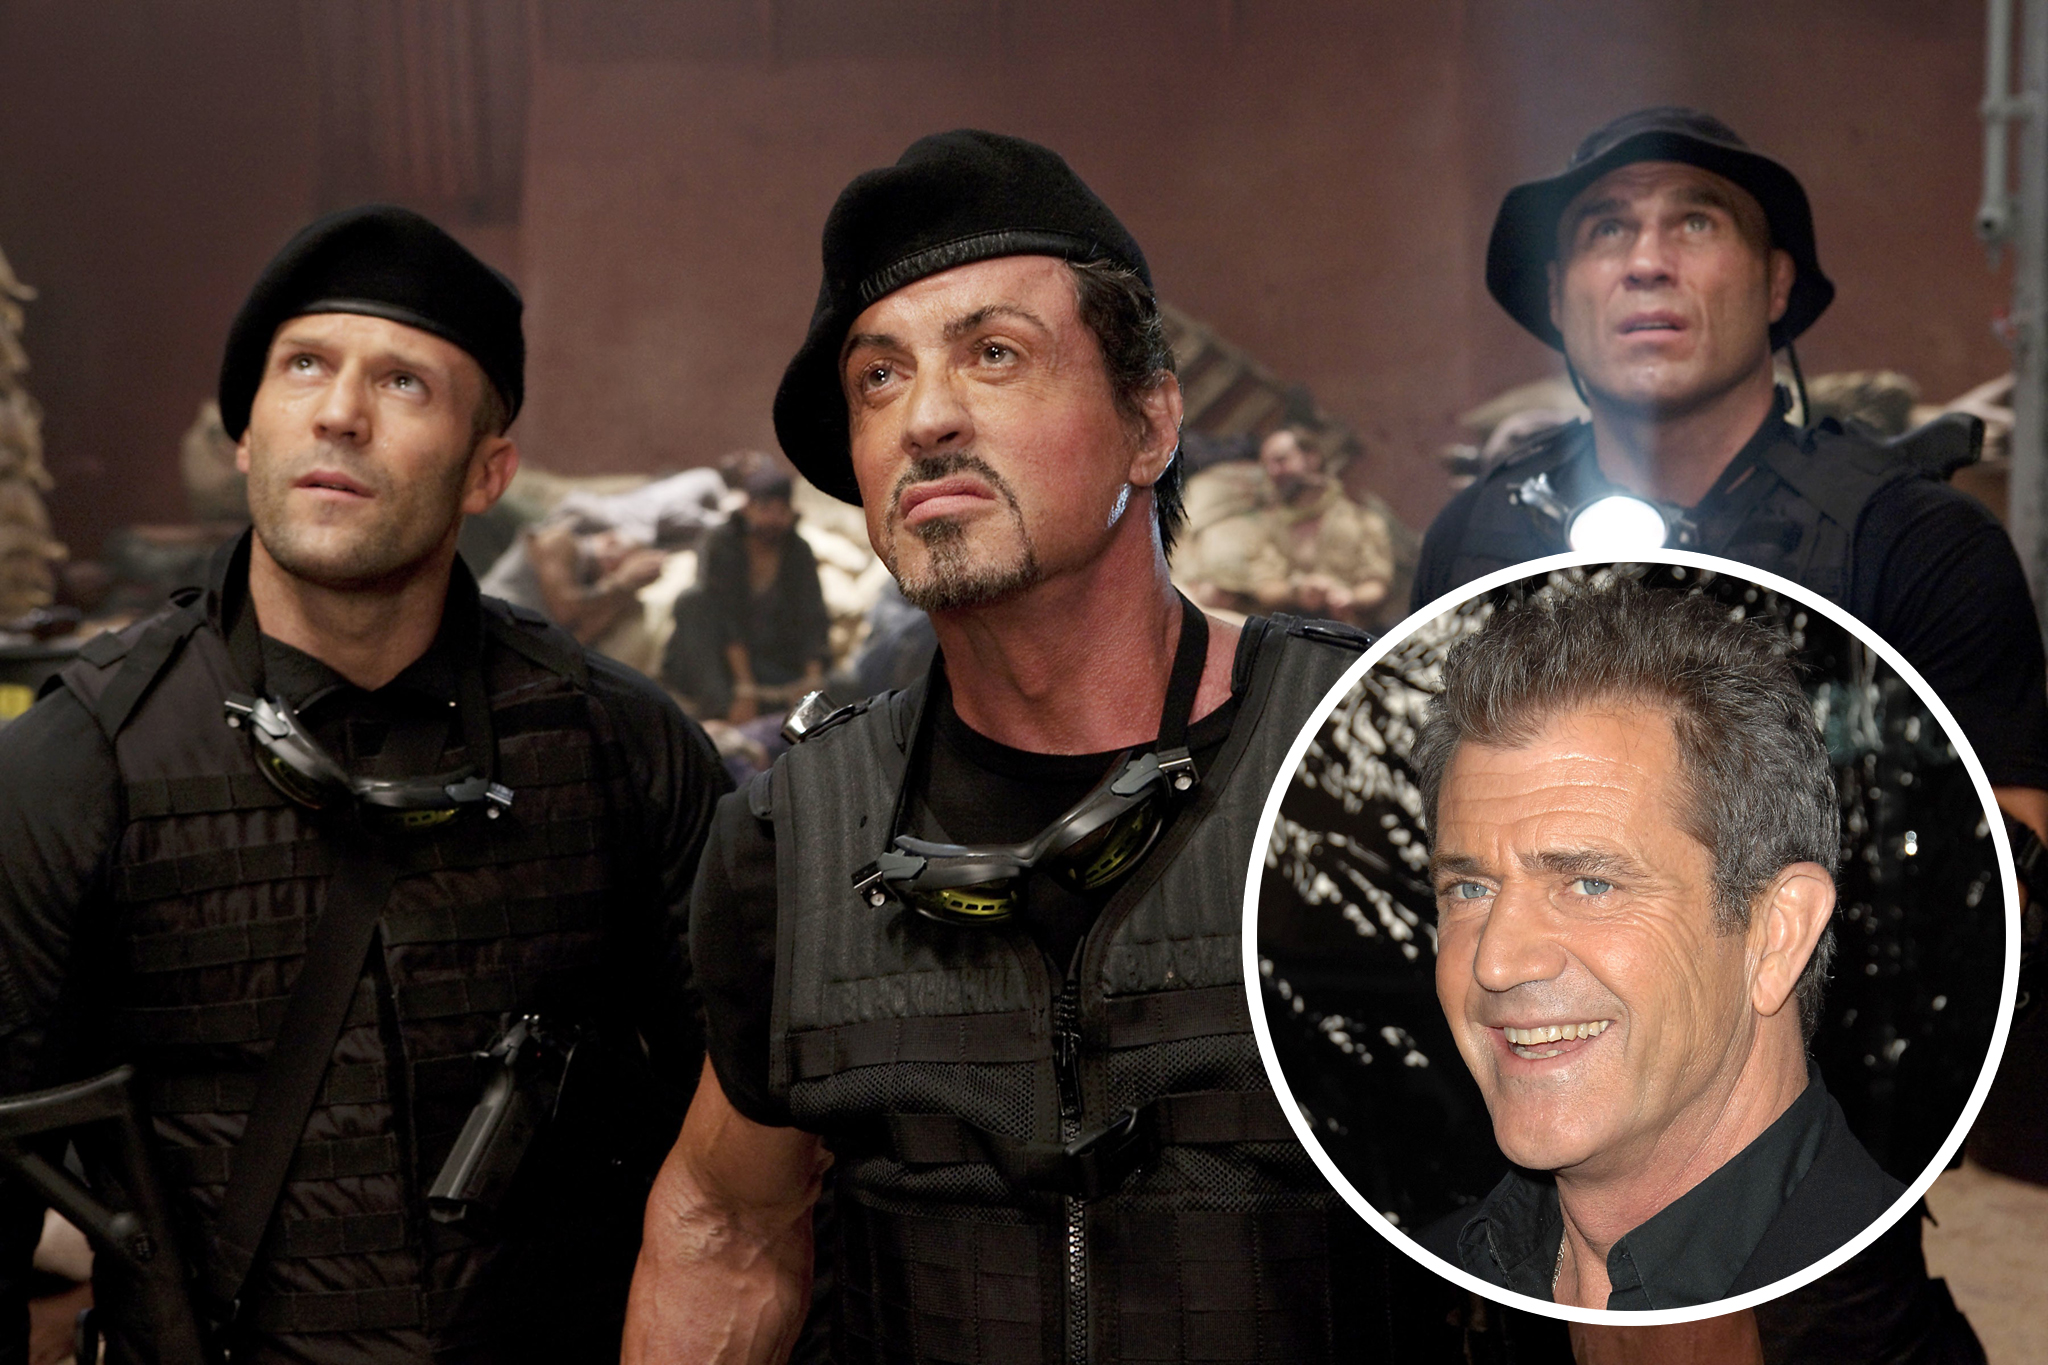 Mel Gibson Revealed as Expendables Co-Founder as 'The Expendables 3' Begins Production